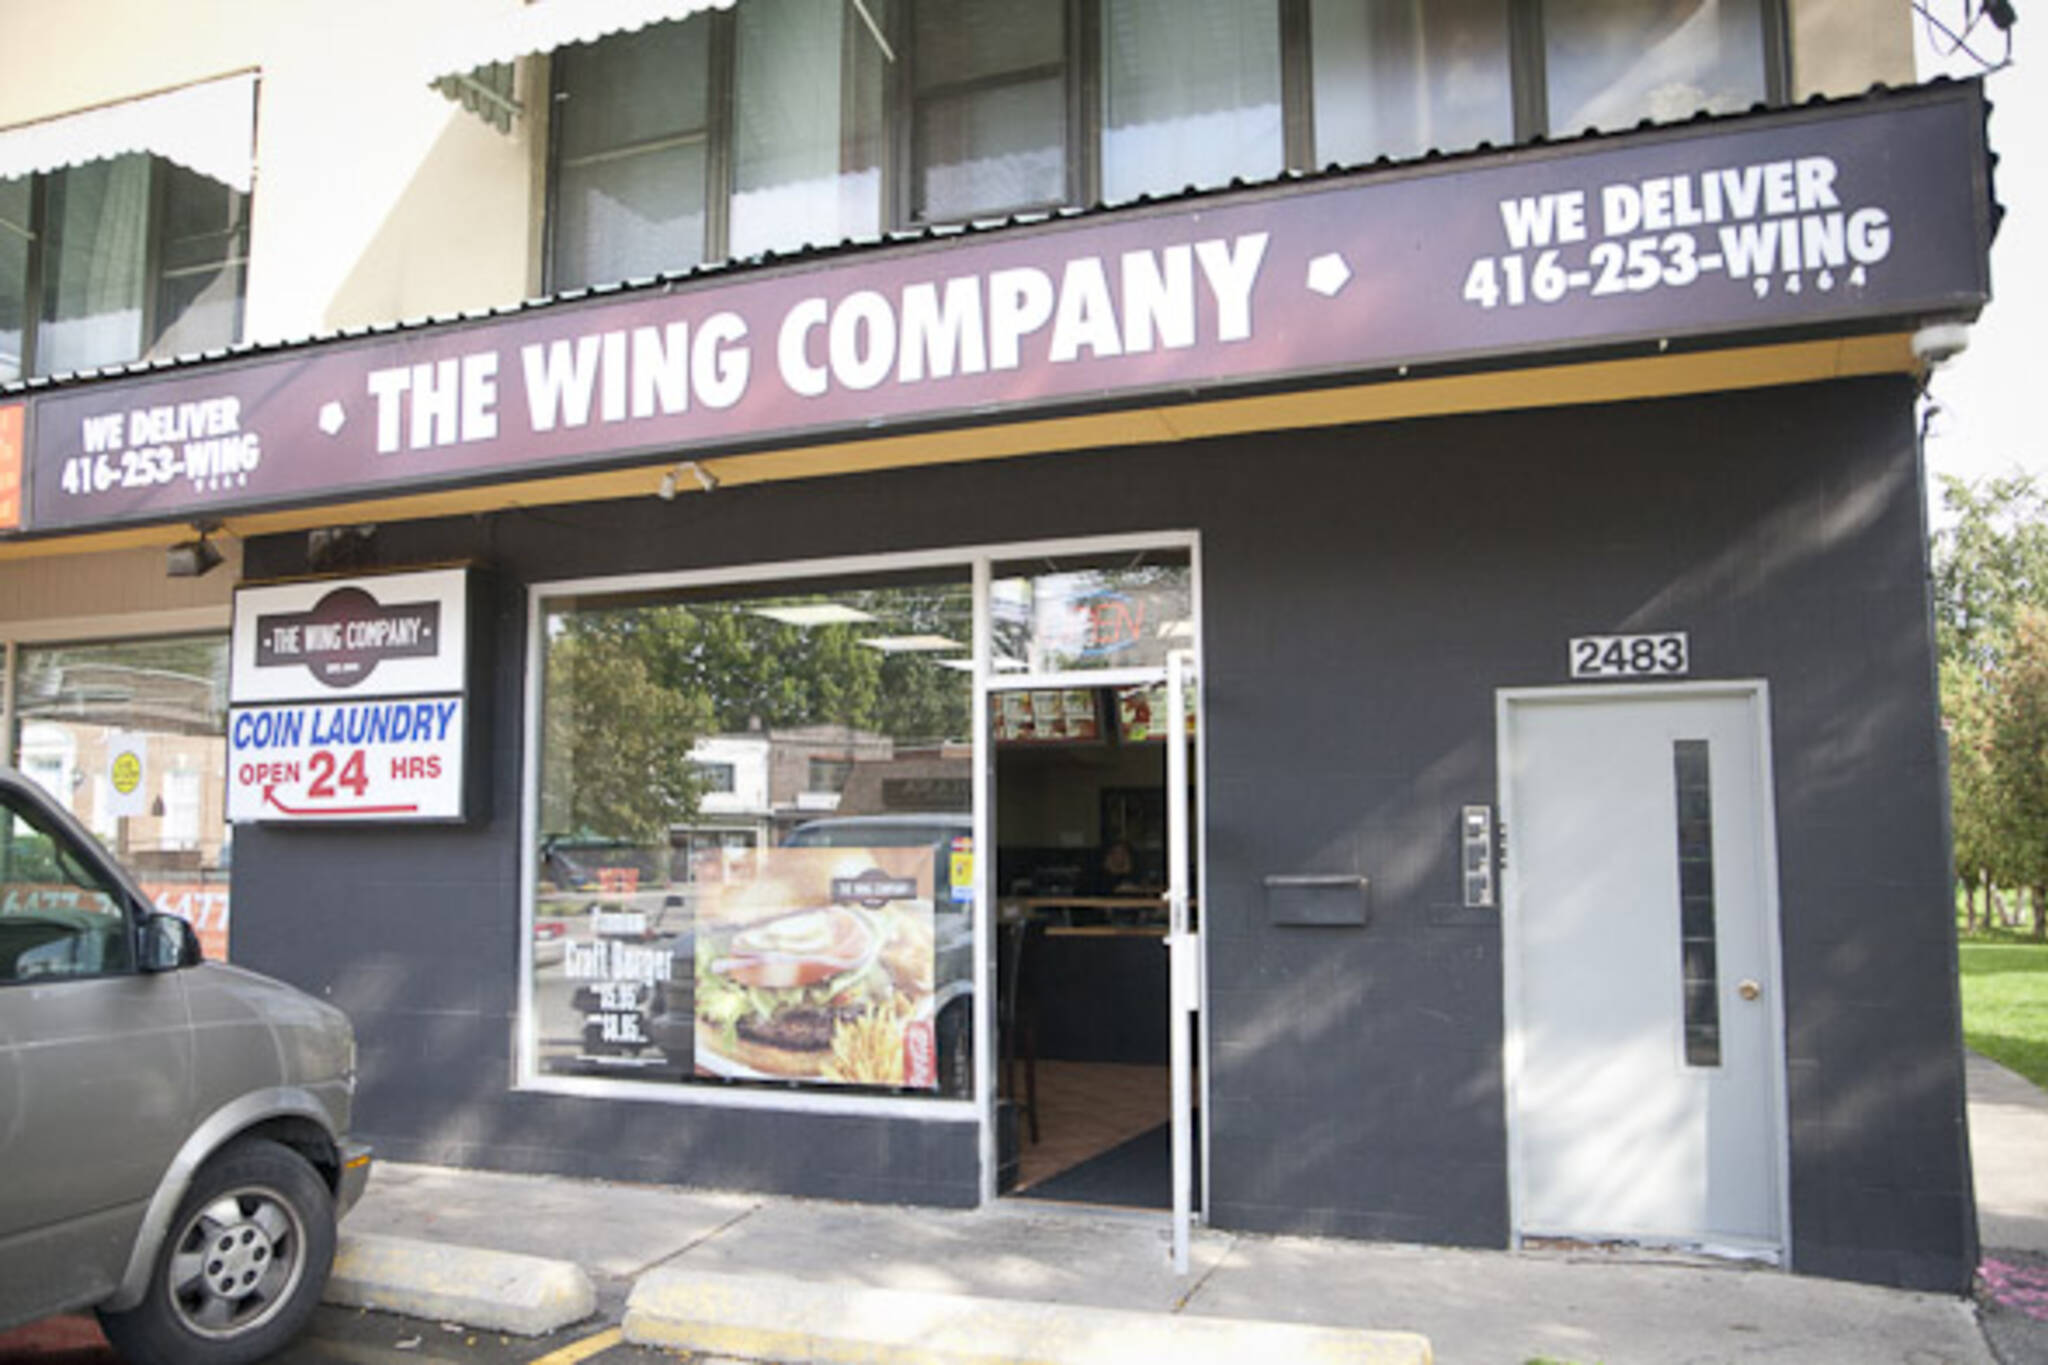 The Wing Company